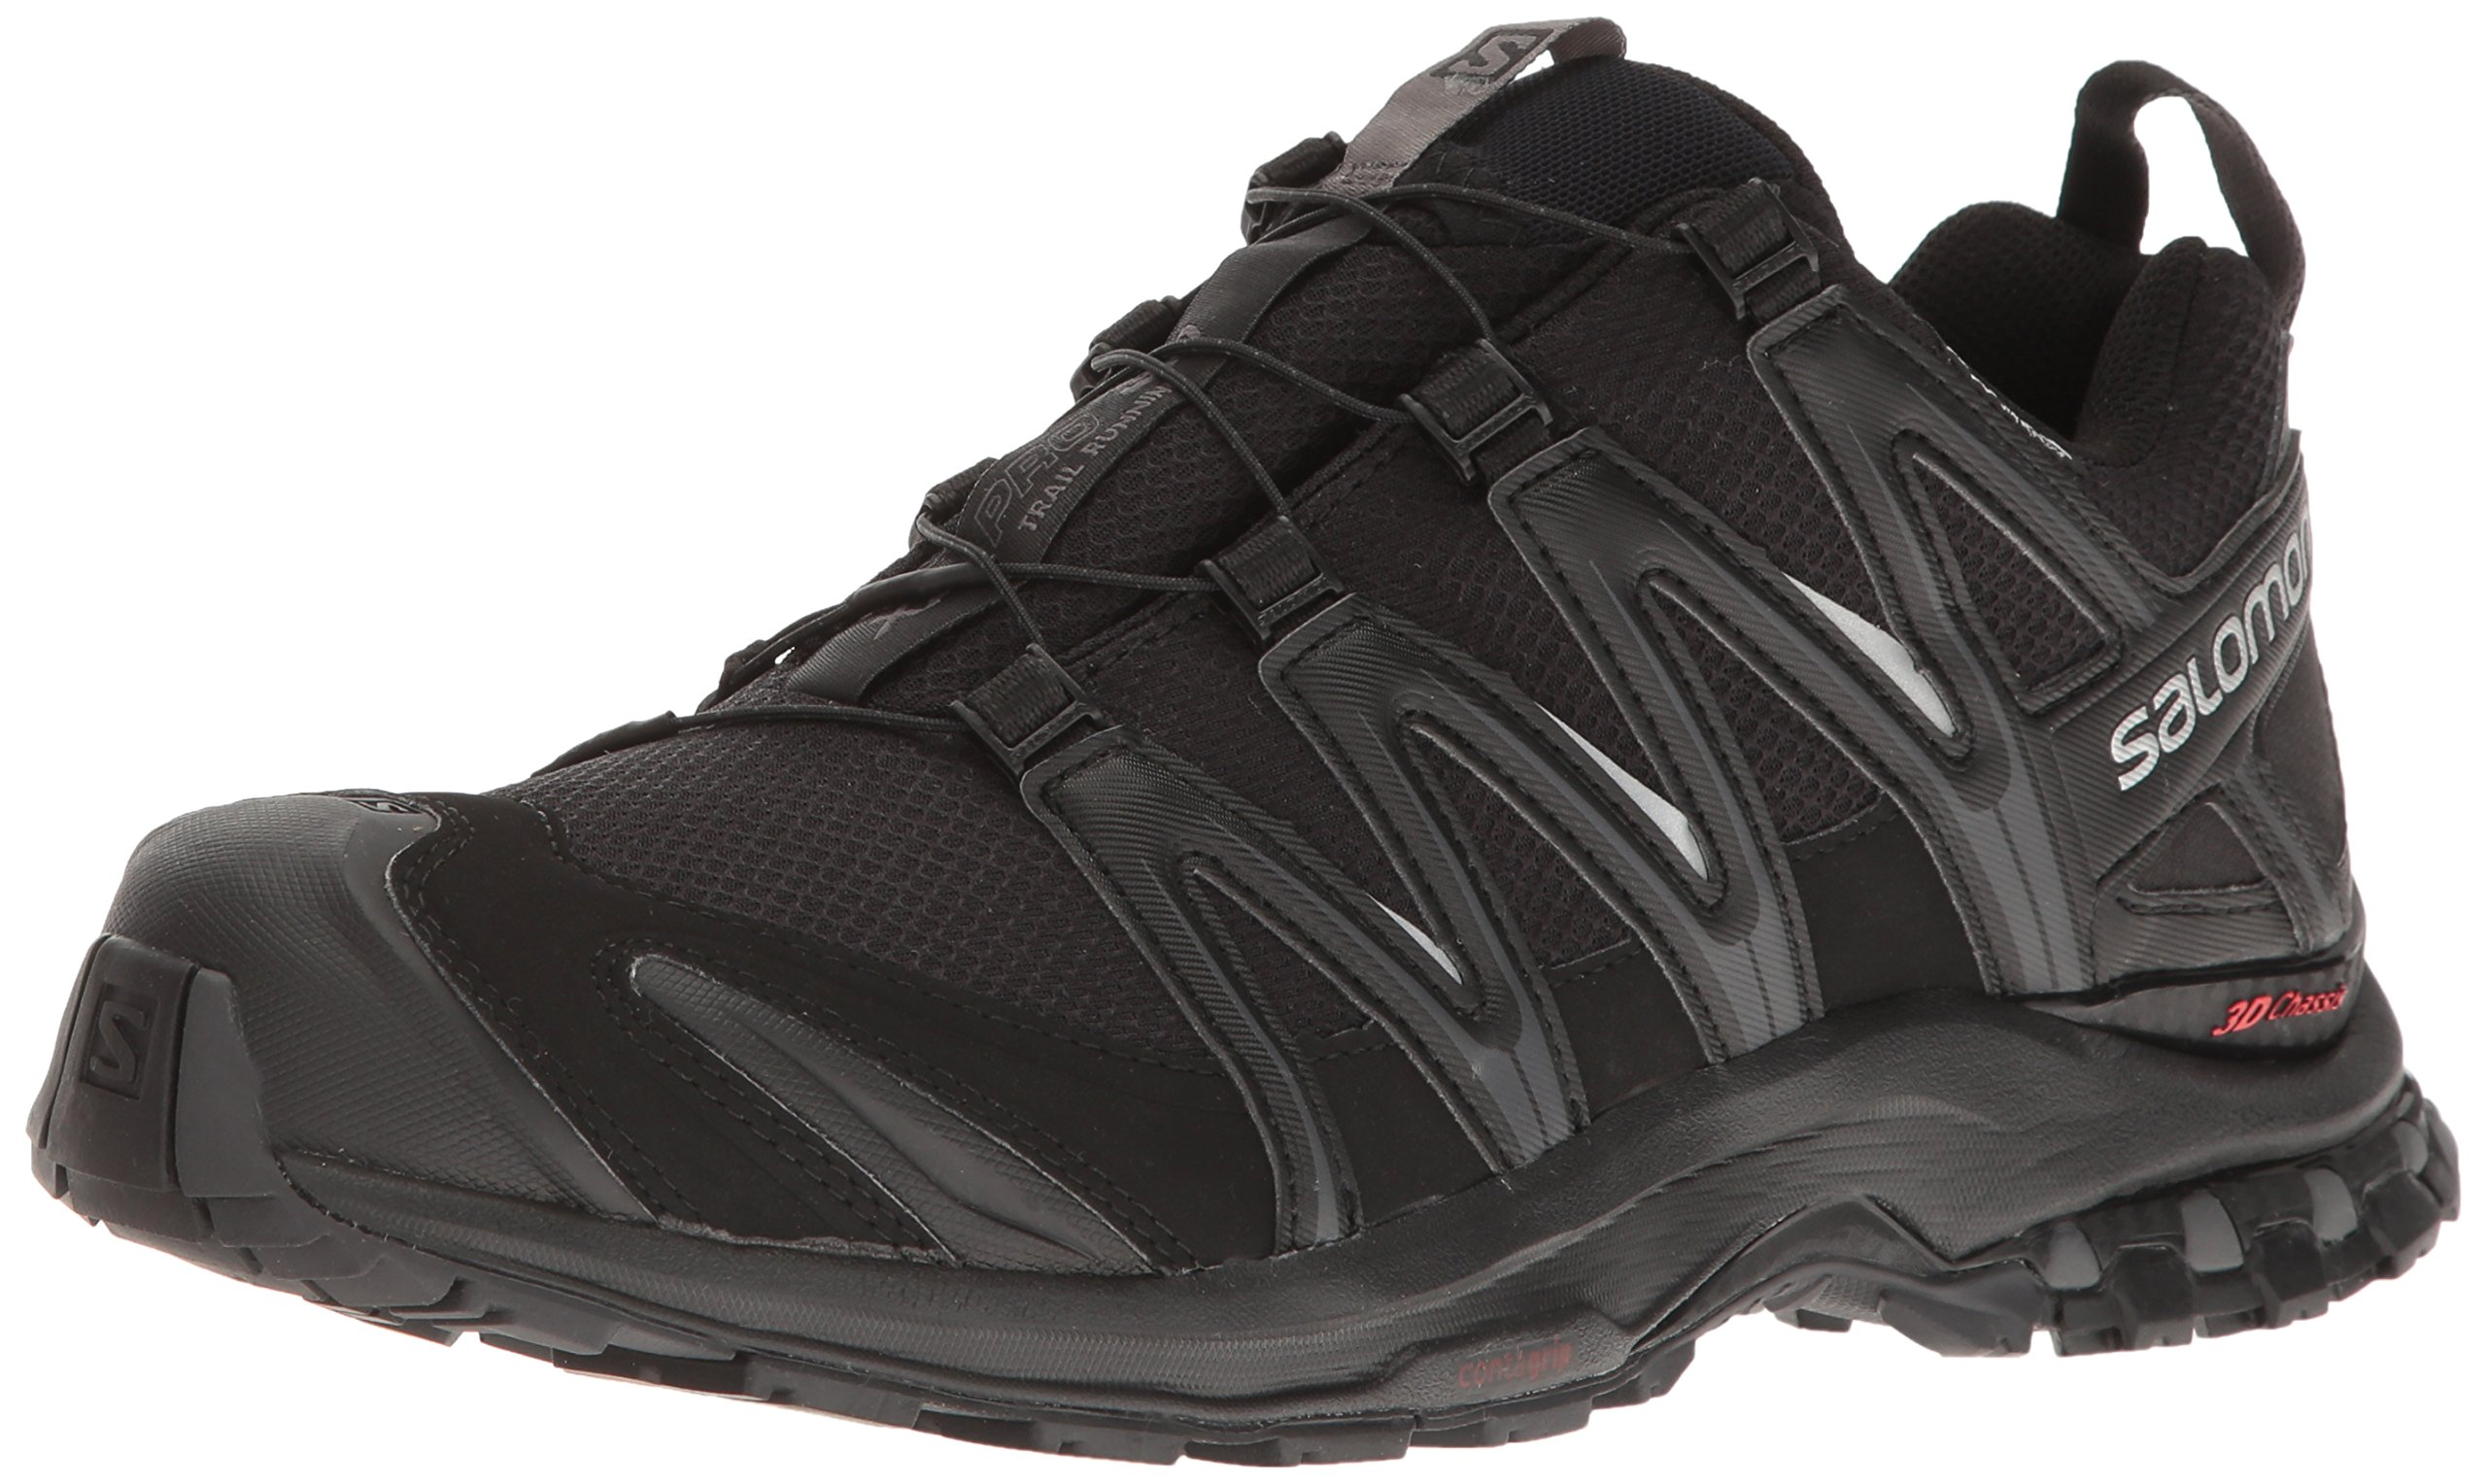 Salomon Men's XA Pro 3D Cs Wp Trail Running Shoes, Black/Black/Magnet, 10.5 by SALOMON